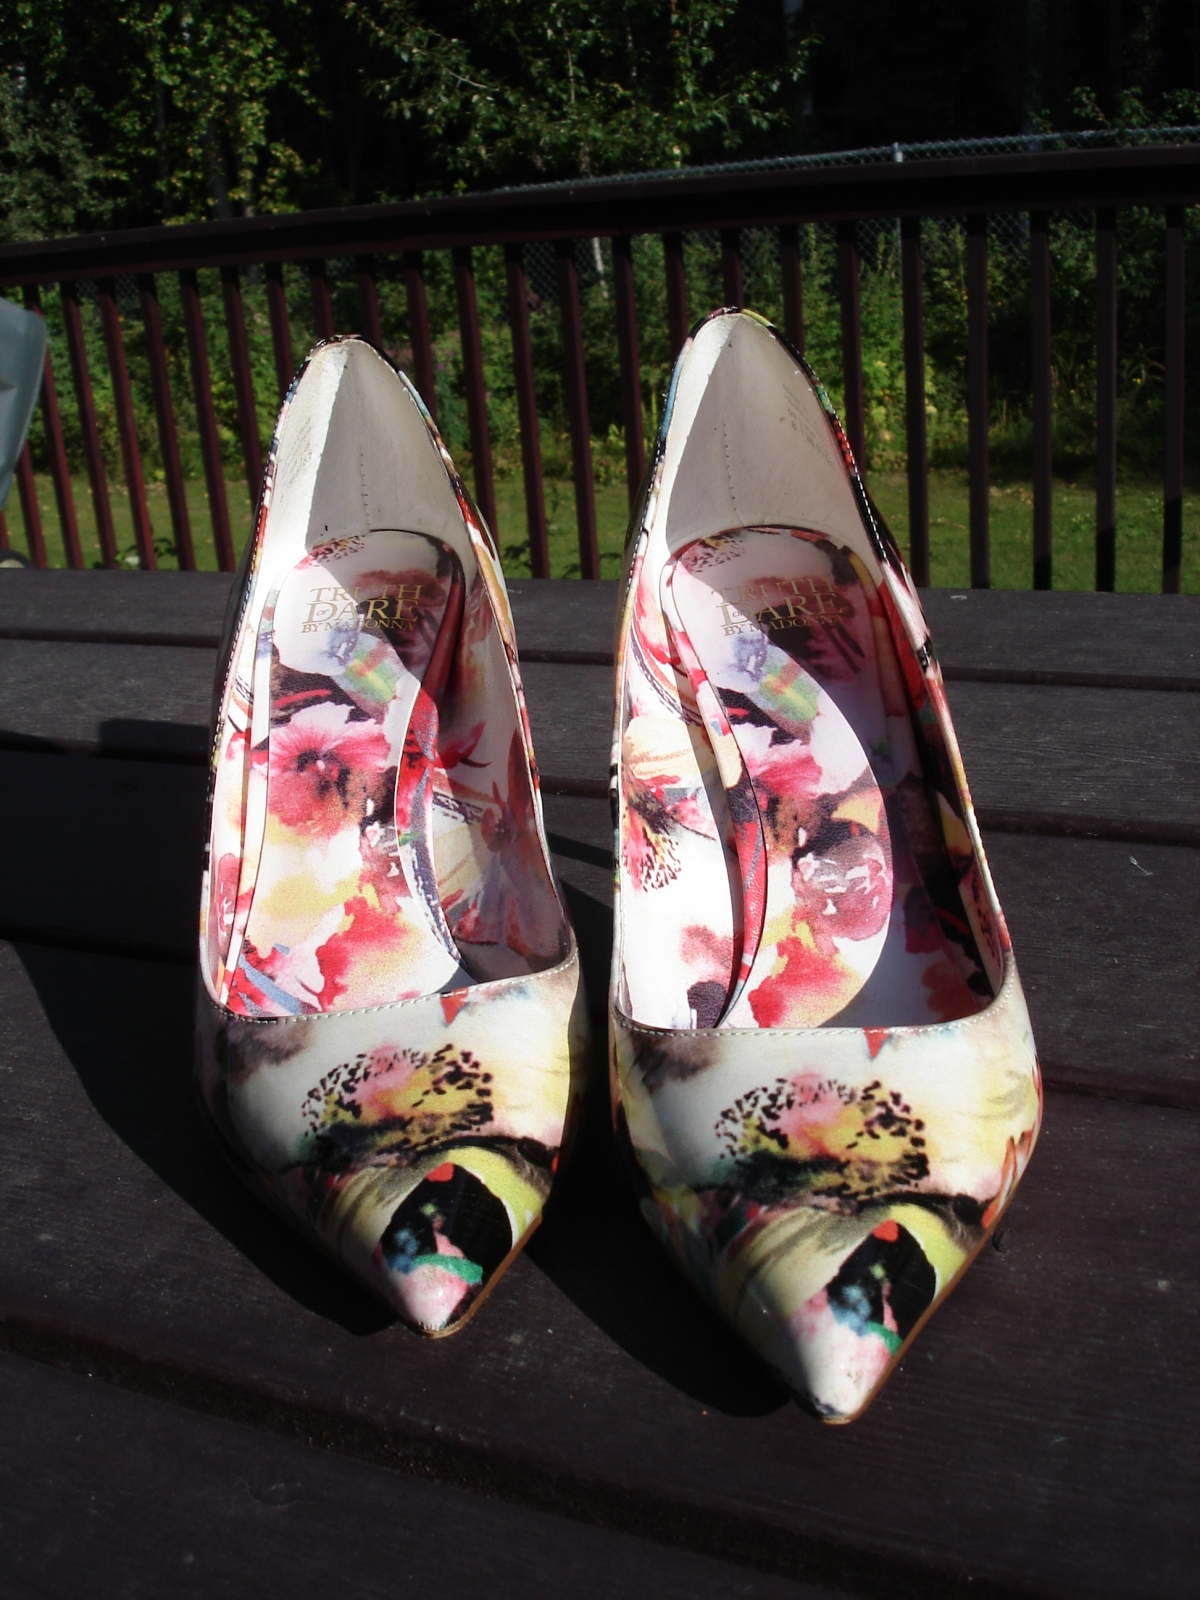 #floralpumps Foral pumps | High Latitude Style | http://www.highlatitudestyle.com